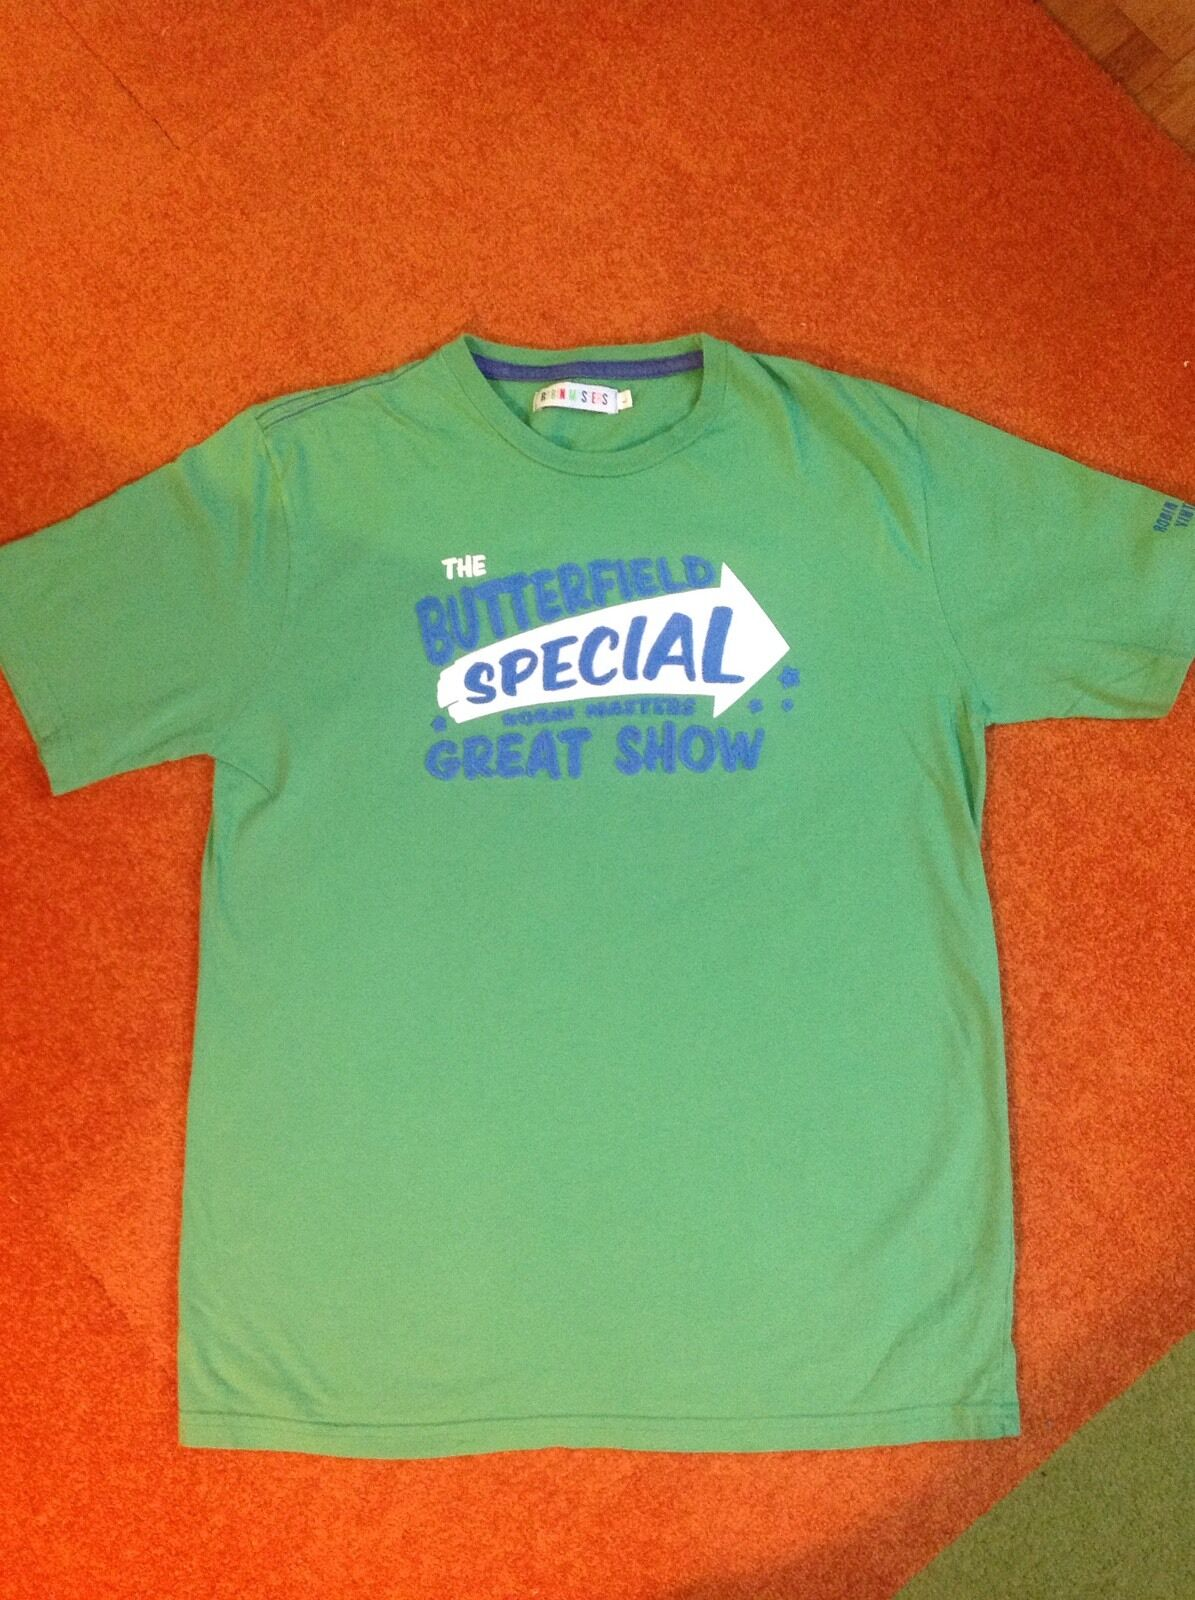 ROBIN MASTERS CO. - EMBROIDERED  T SHIRT -  THE BUTTERFIELD SPECIAL   GREEN SZ L